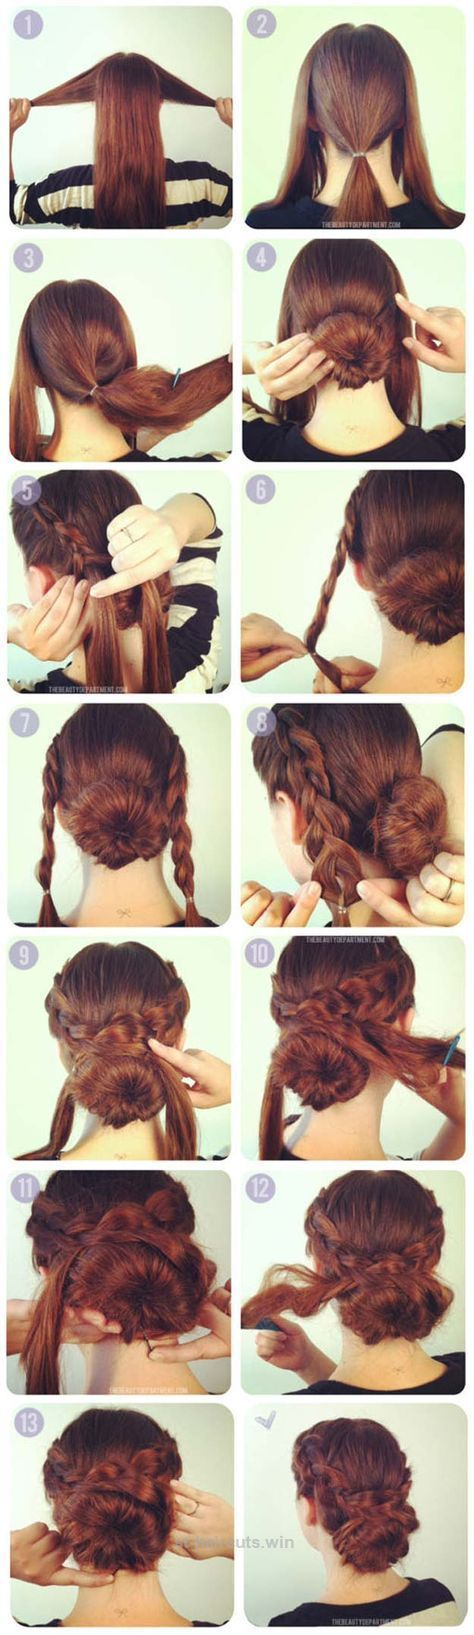 Adorable Best Hairstyles for Long Hair – Hot Crossed Bun – Step by Step Tutorials for Easy Curls, Updo, Half Up, Braids and Lazy Girl Looks. Prom Ideas, Special Occasion Hair  ..